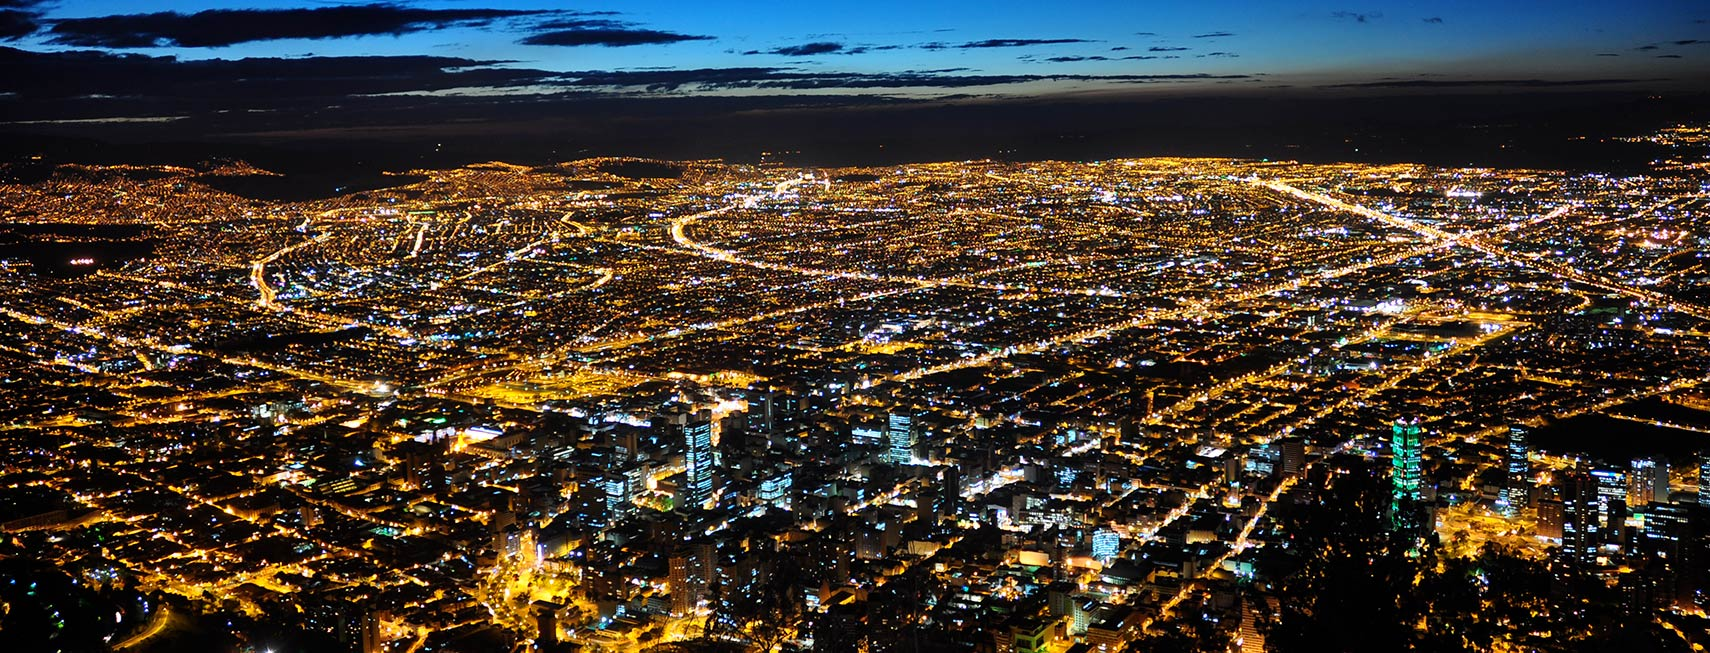 Google Map of the City of Bogotá, Bogota, Colombia - Nations ...